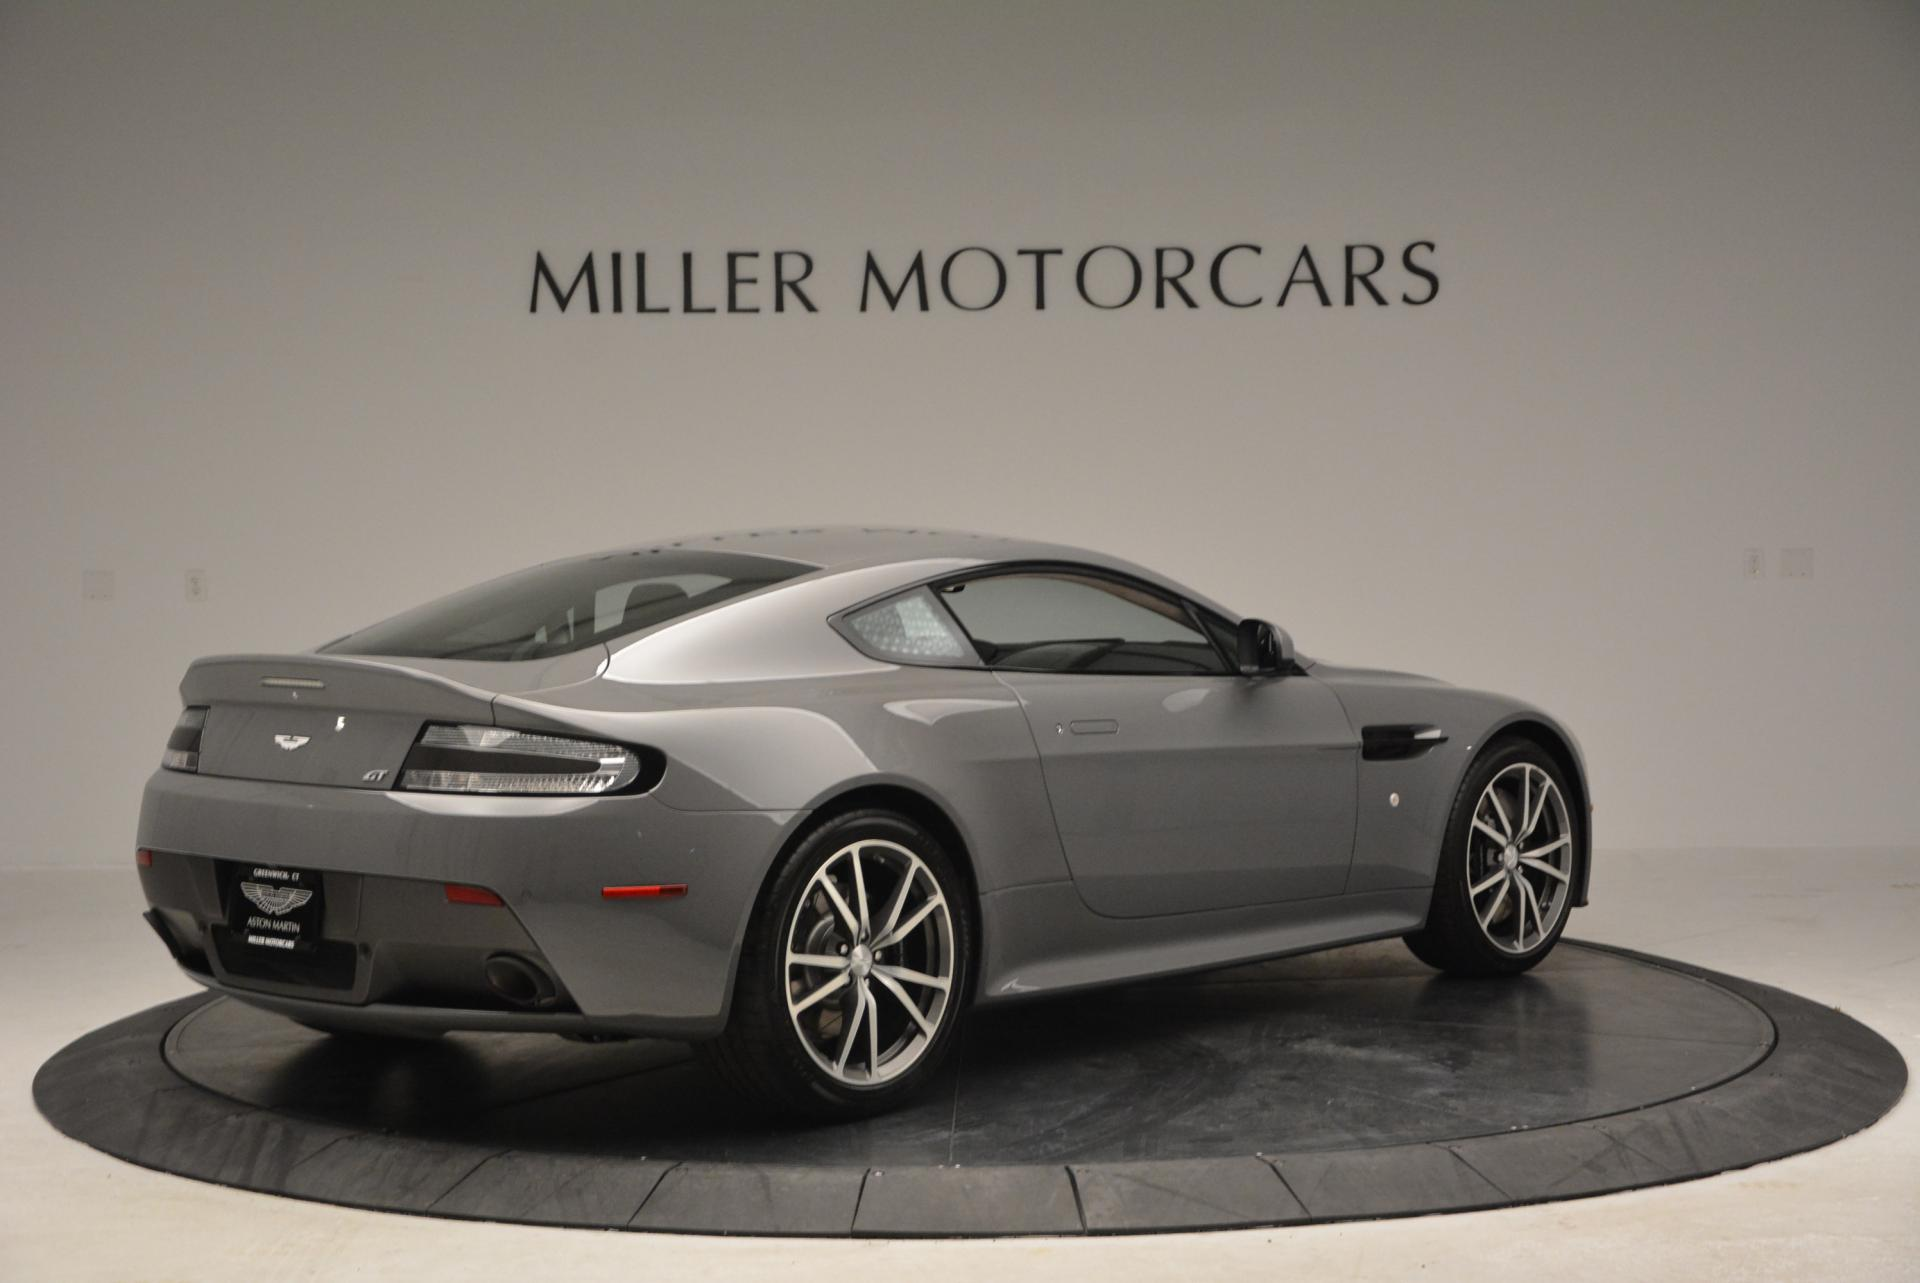 New 2016 Aston Martin Vantage GT  For Sale In Westport, CT 100_p8